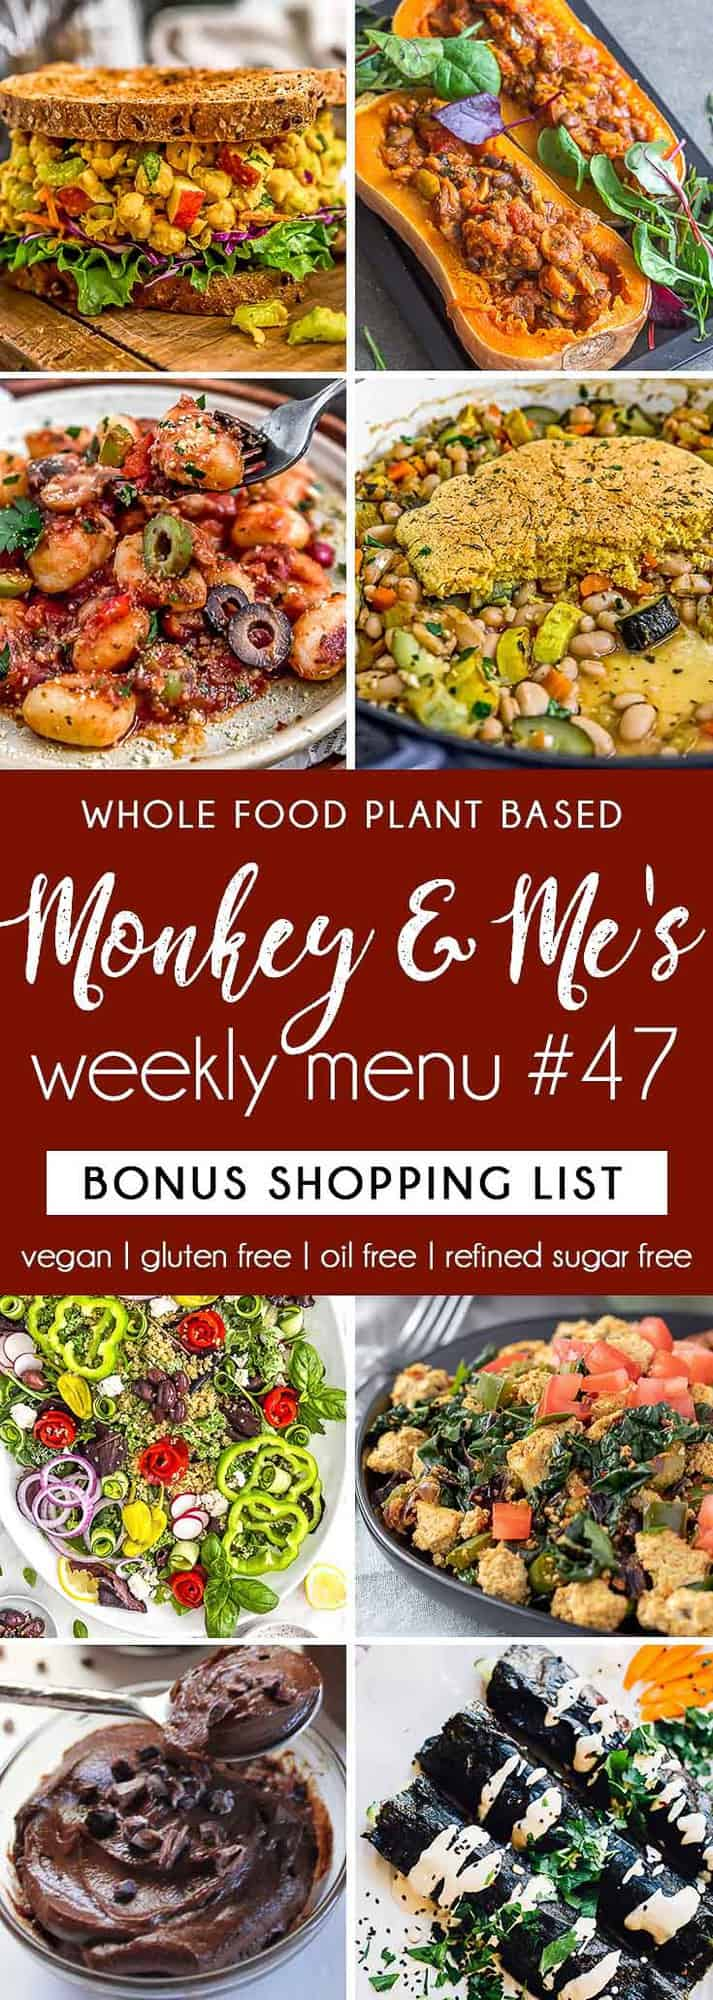 Monkey and Me's Menu 47 featuring 8 recipes